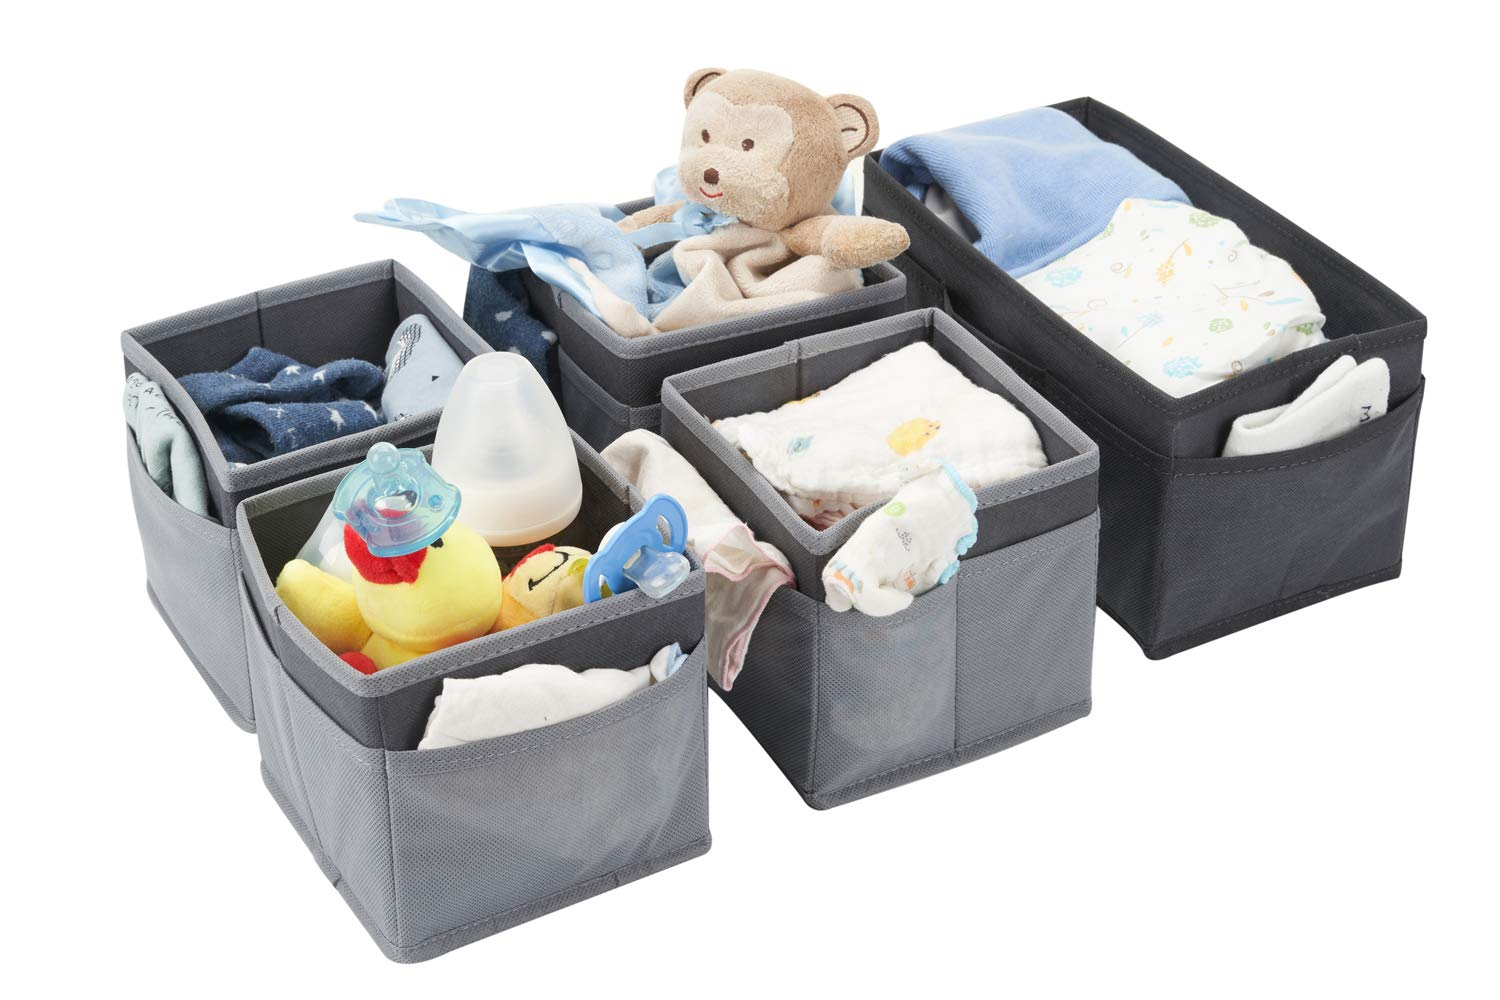 Miya-J Set of 5 Nappy Caddies,Large Storage Box and Four Box With Two Layer Compartments for Nappy Changing,Socks,Clothes,Wipes,Bibs Accessories etc